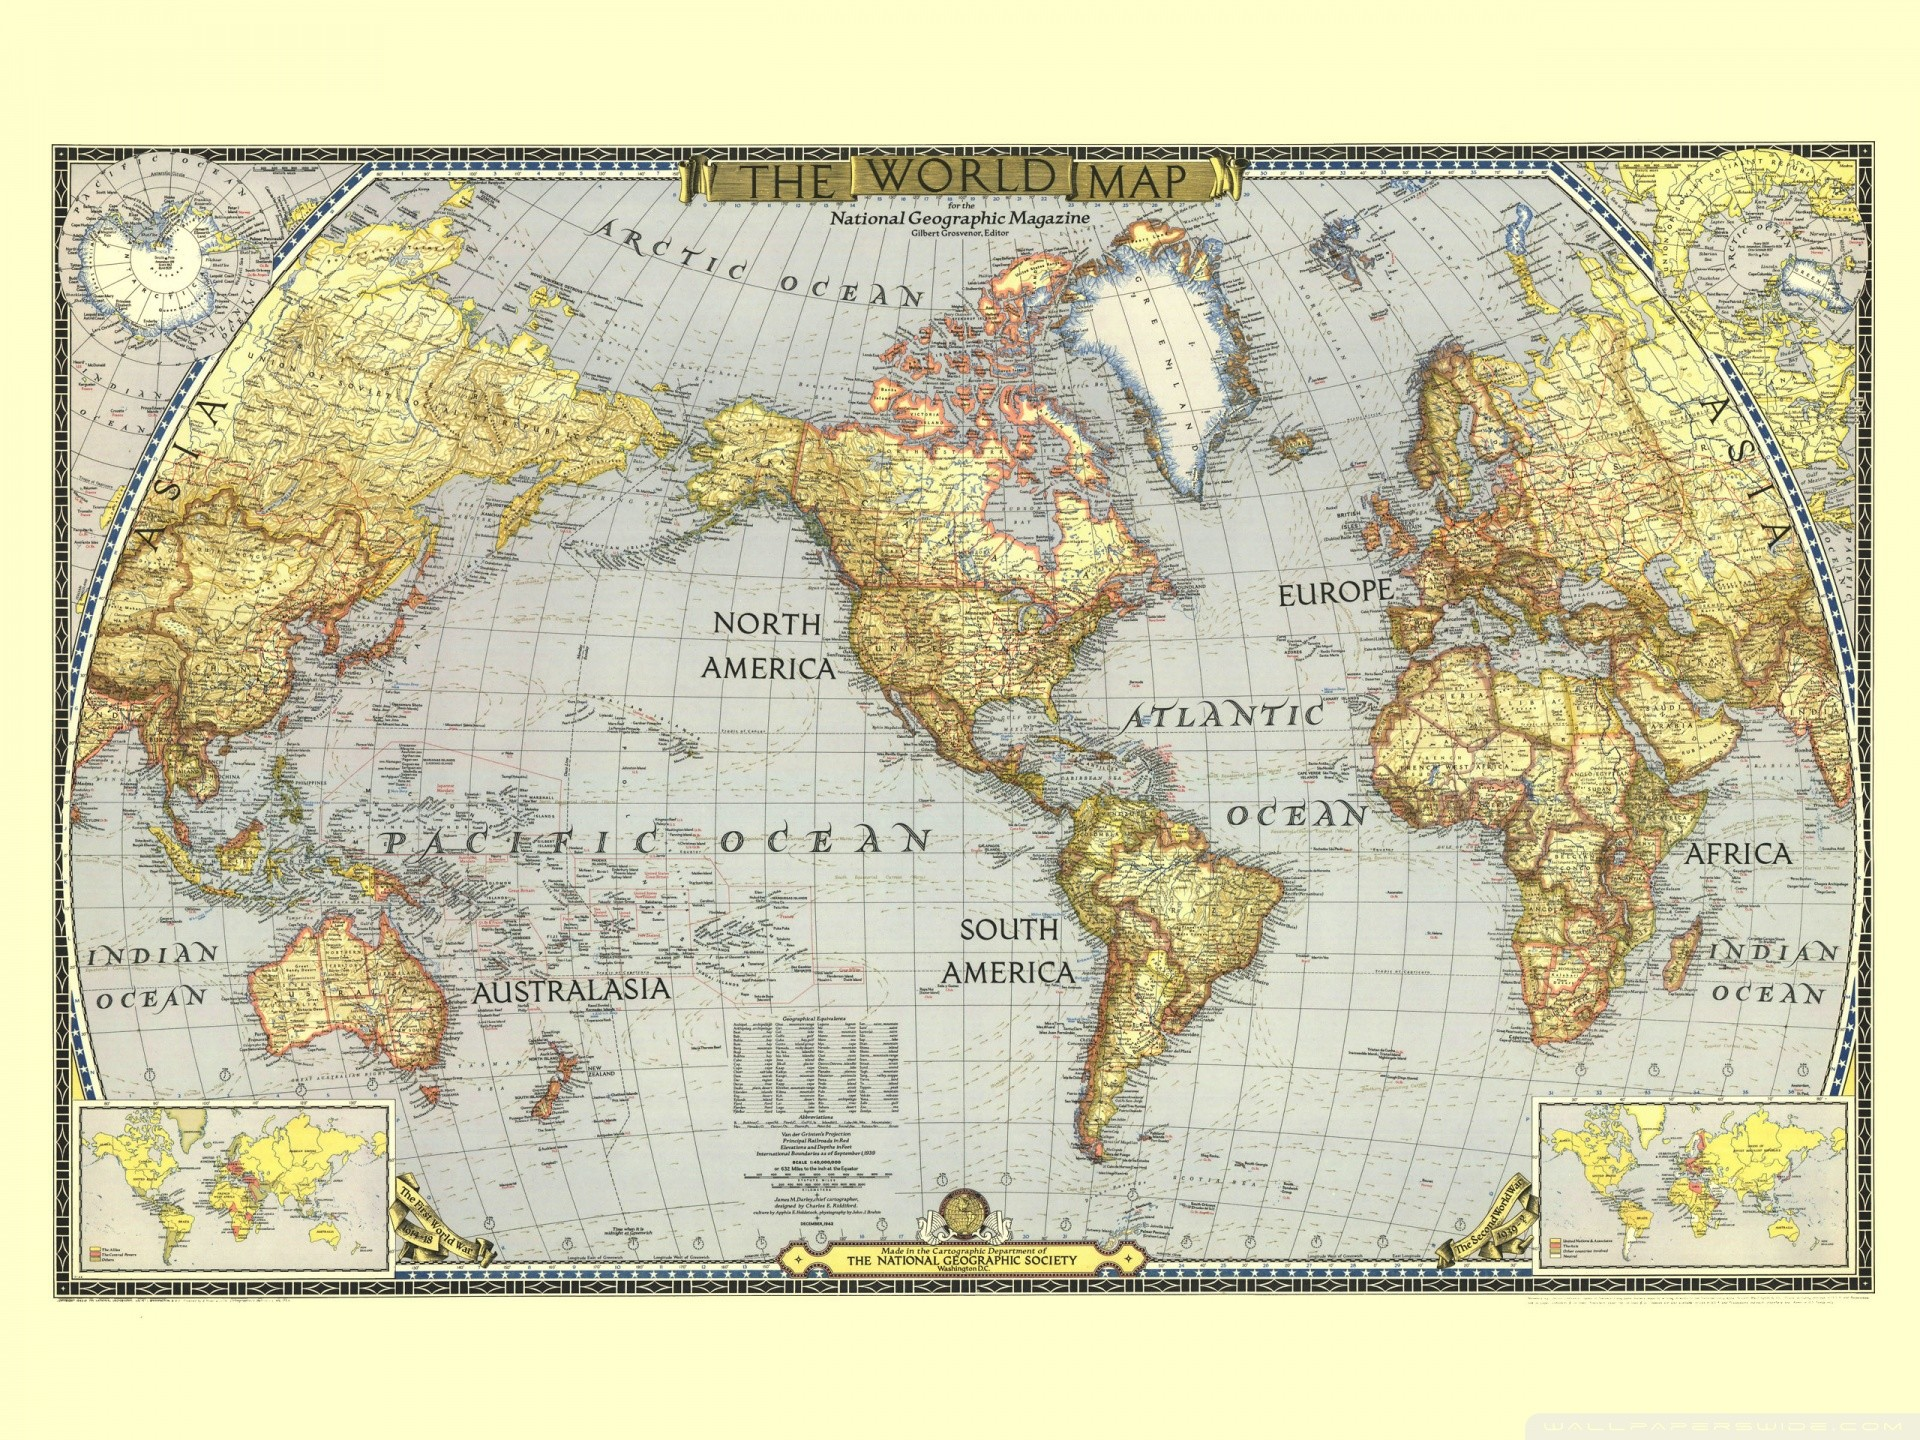 World map wallpaper high resolution high quality world map 7 world map 6 gumiabroncs Image collections